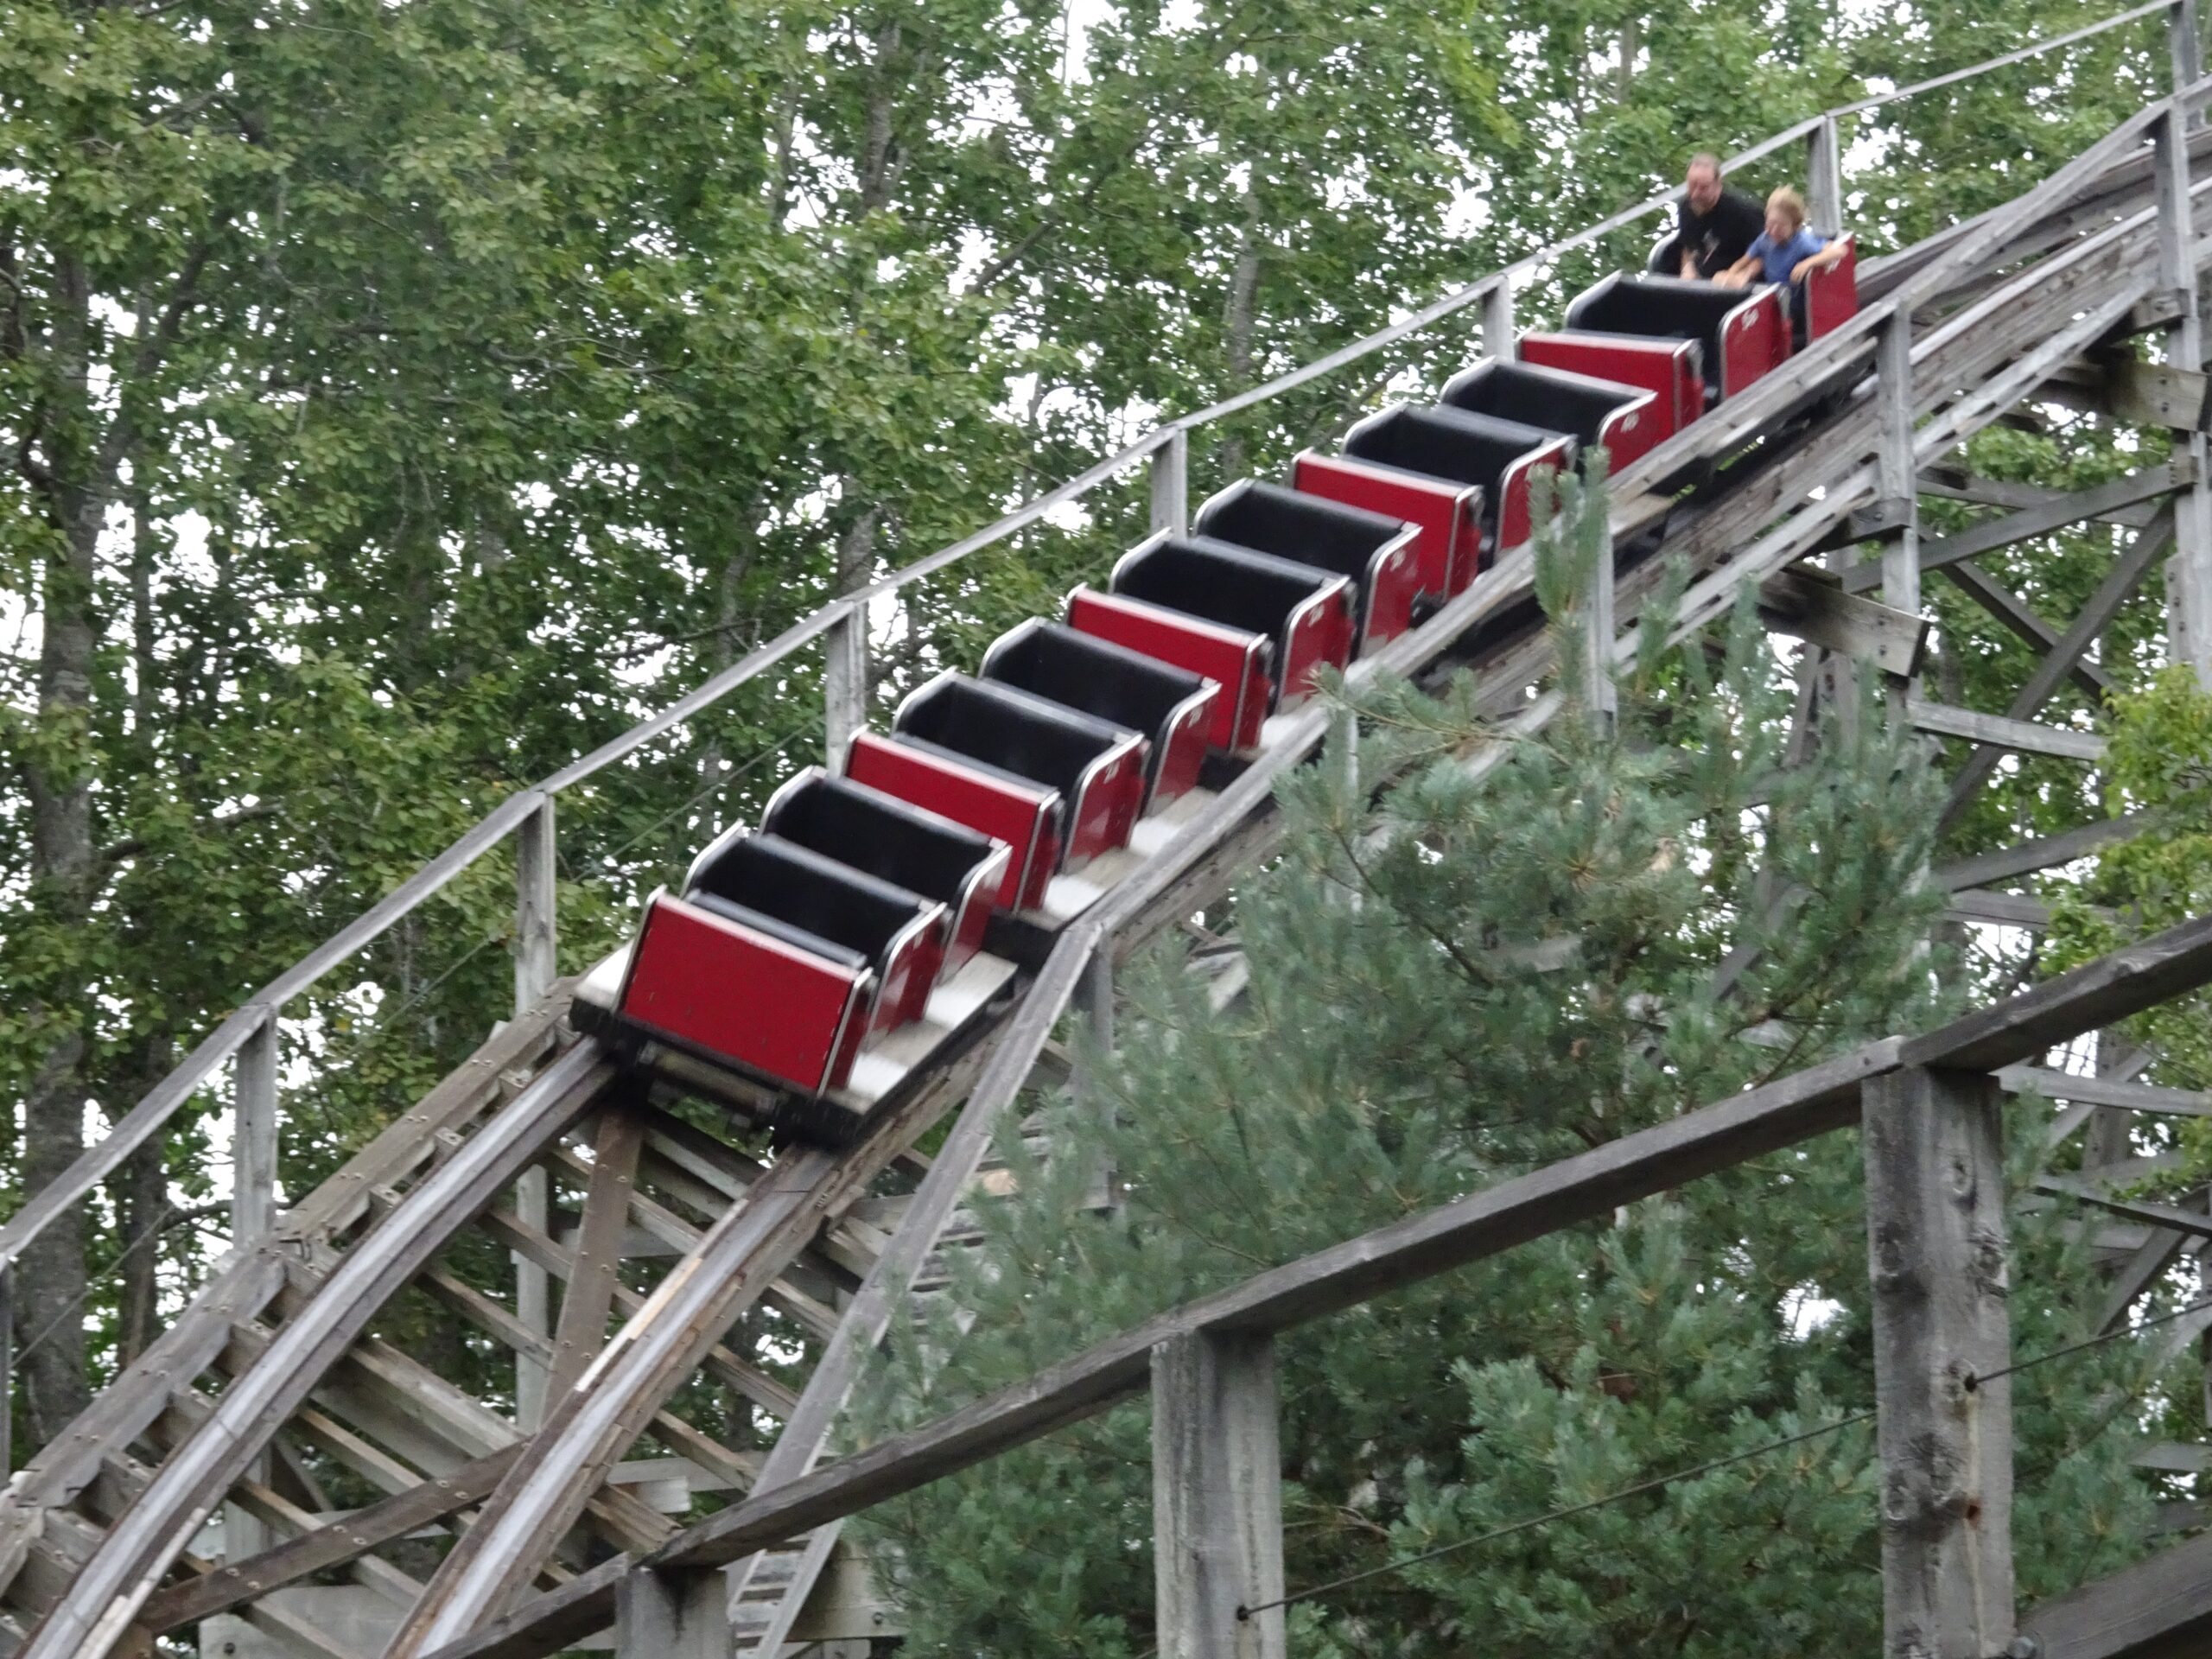 Roller coaster with car that's empty except for the last seat.